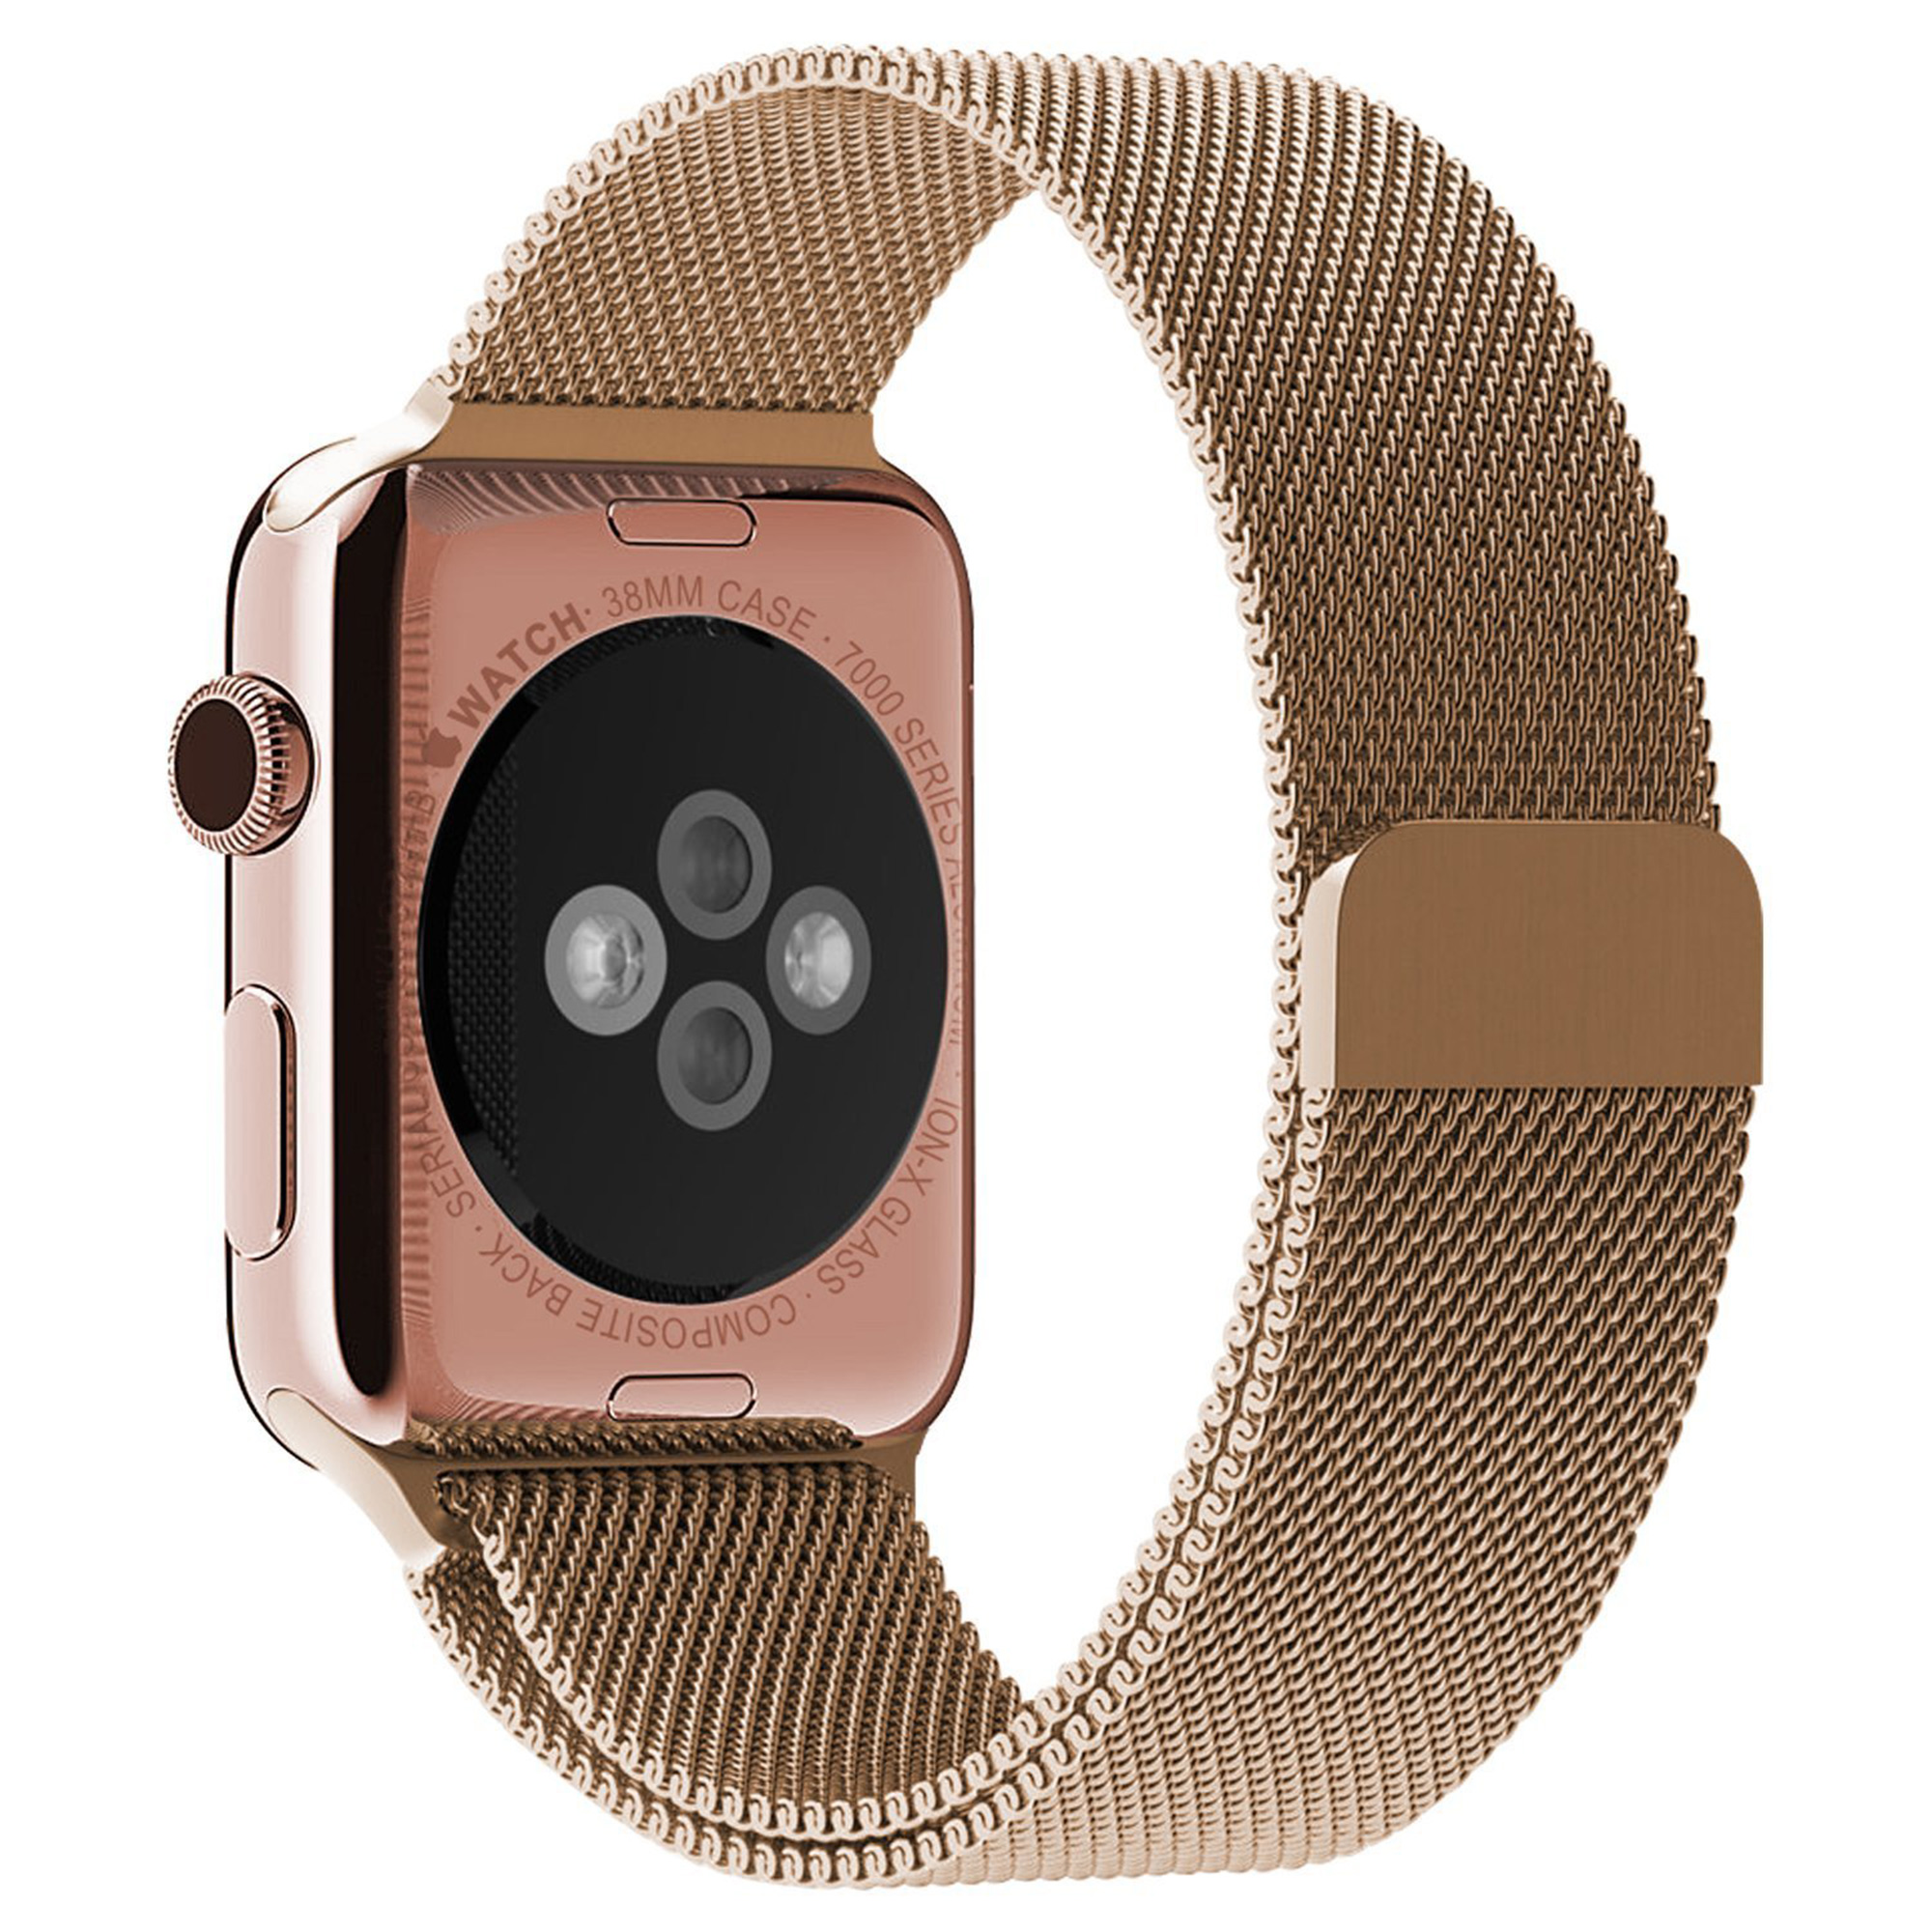 Beikel Apple Watch 3 38mm Milanese Loop Stainless Steel Bracelet Strap Band for Apple Watch Series 1 2 & 3